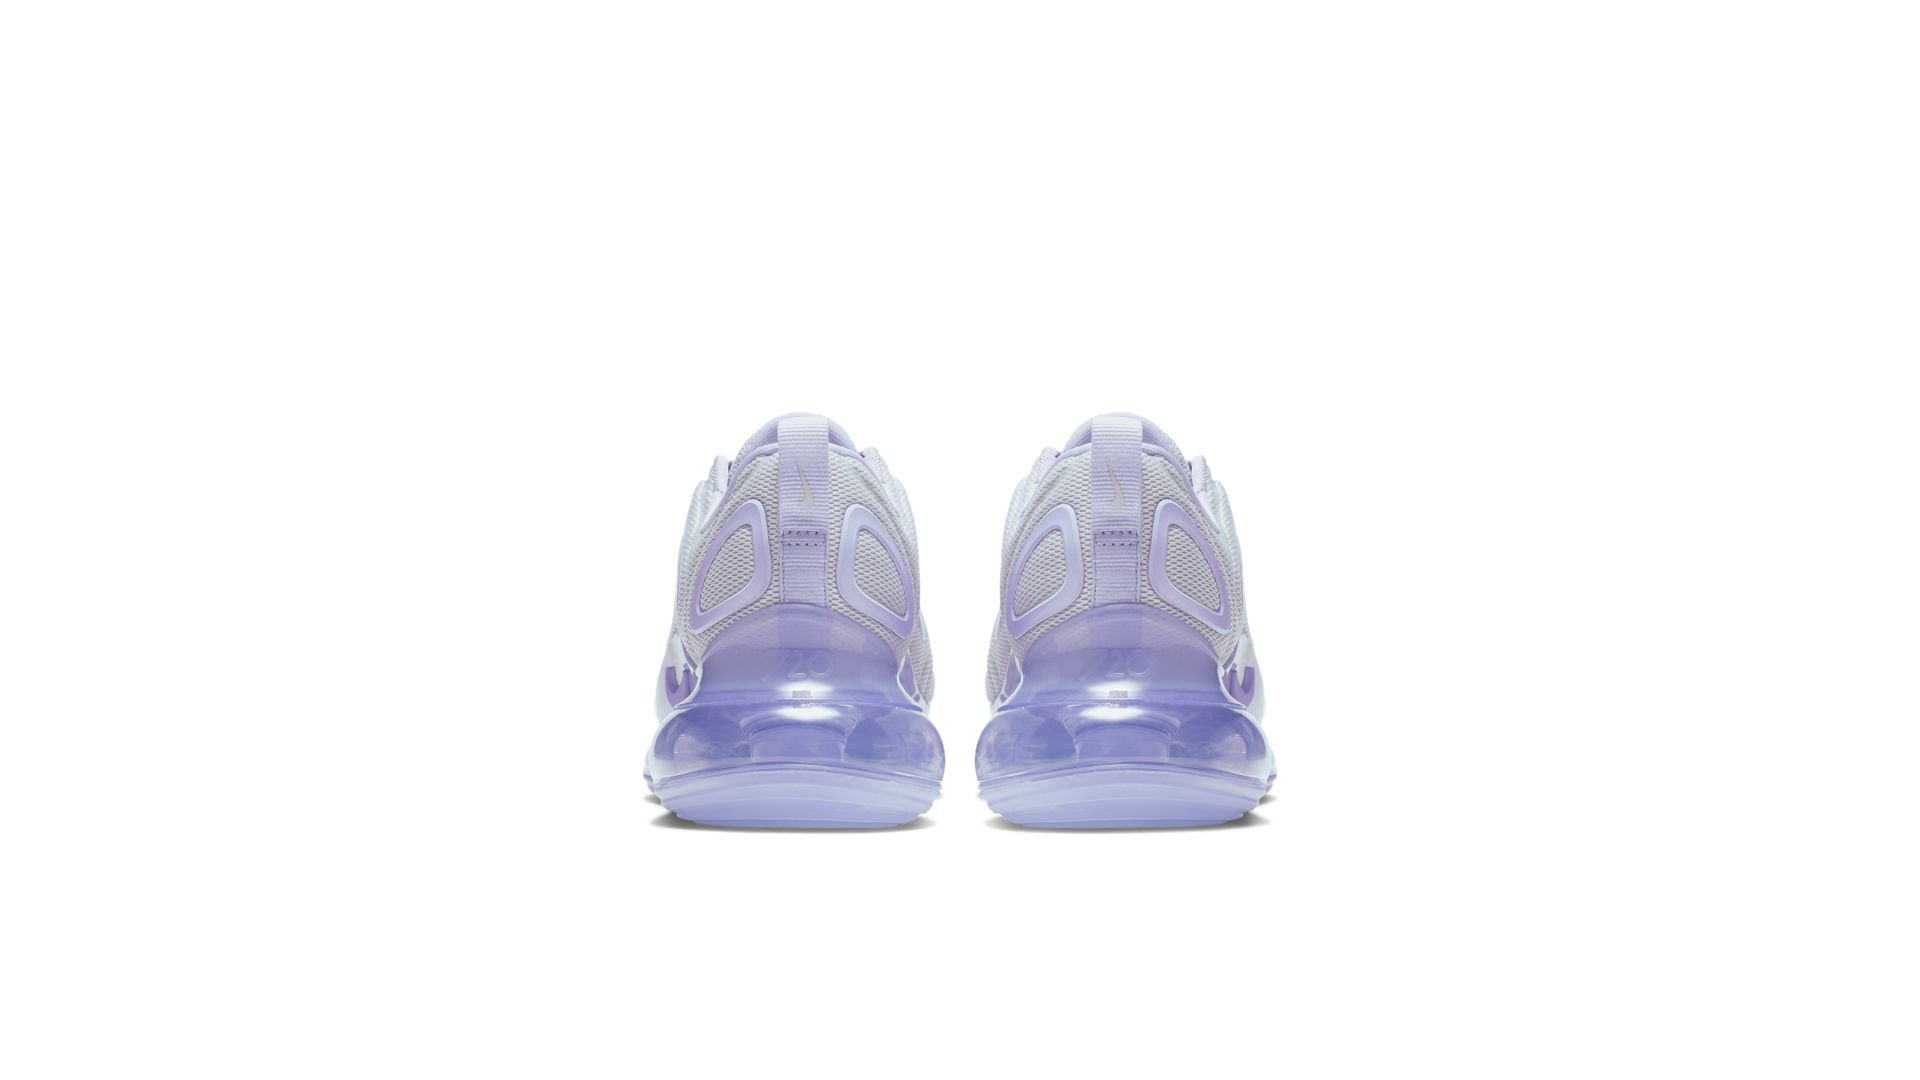 Nike WMNS Air Max 720 'Oxygen Purple' (AR9293-009)